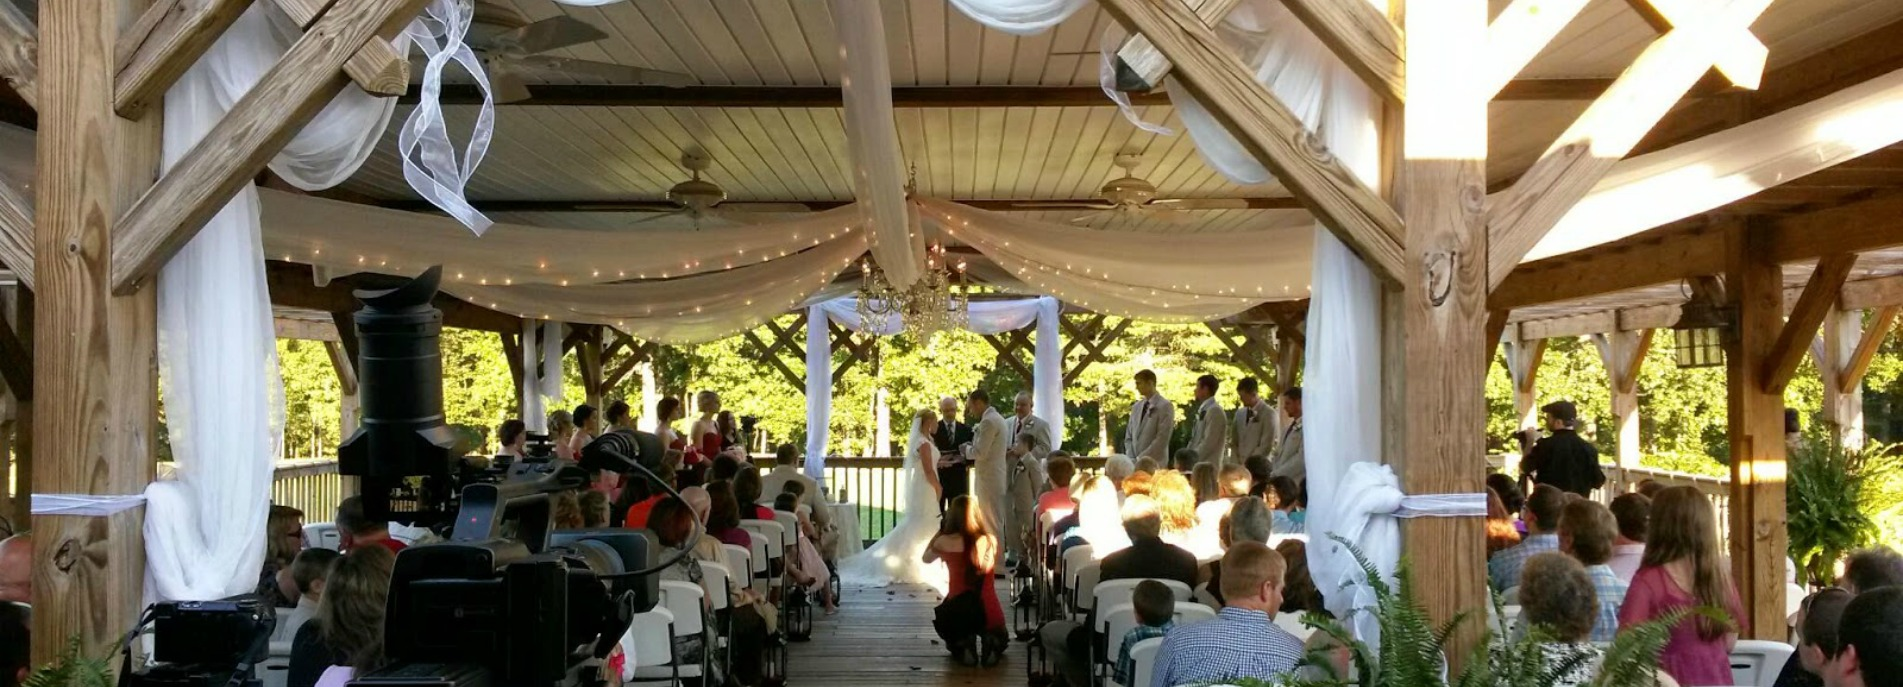 The Perfect Venue: North Carolina Vineyard Wedding Venue At Reisefeber.org